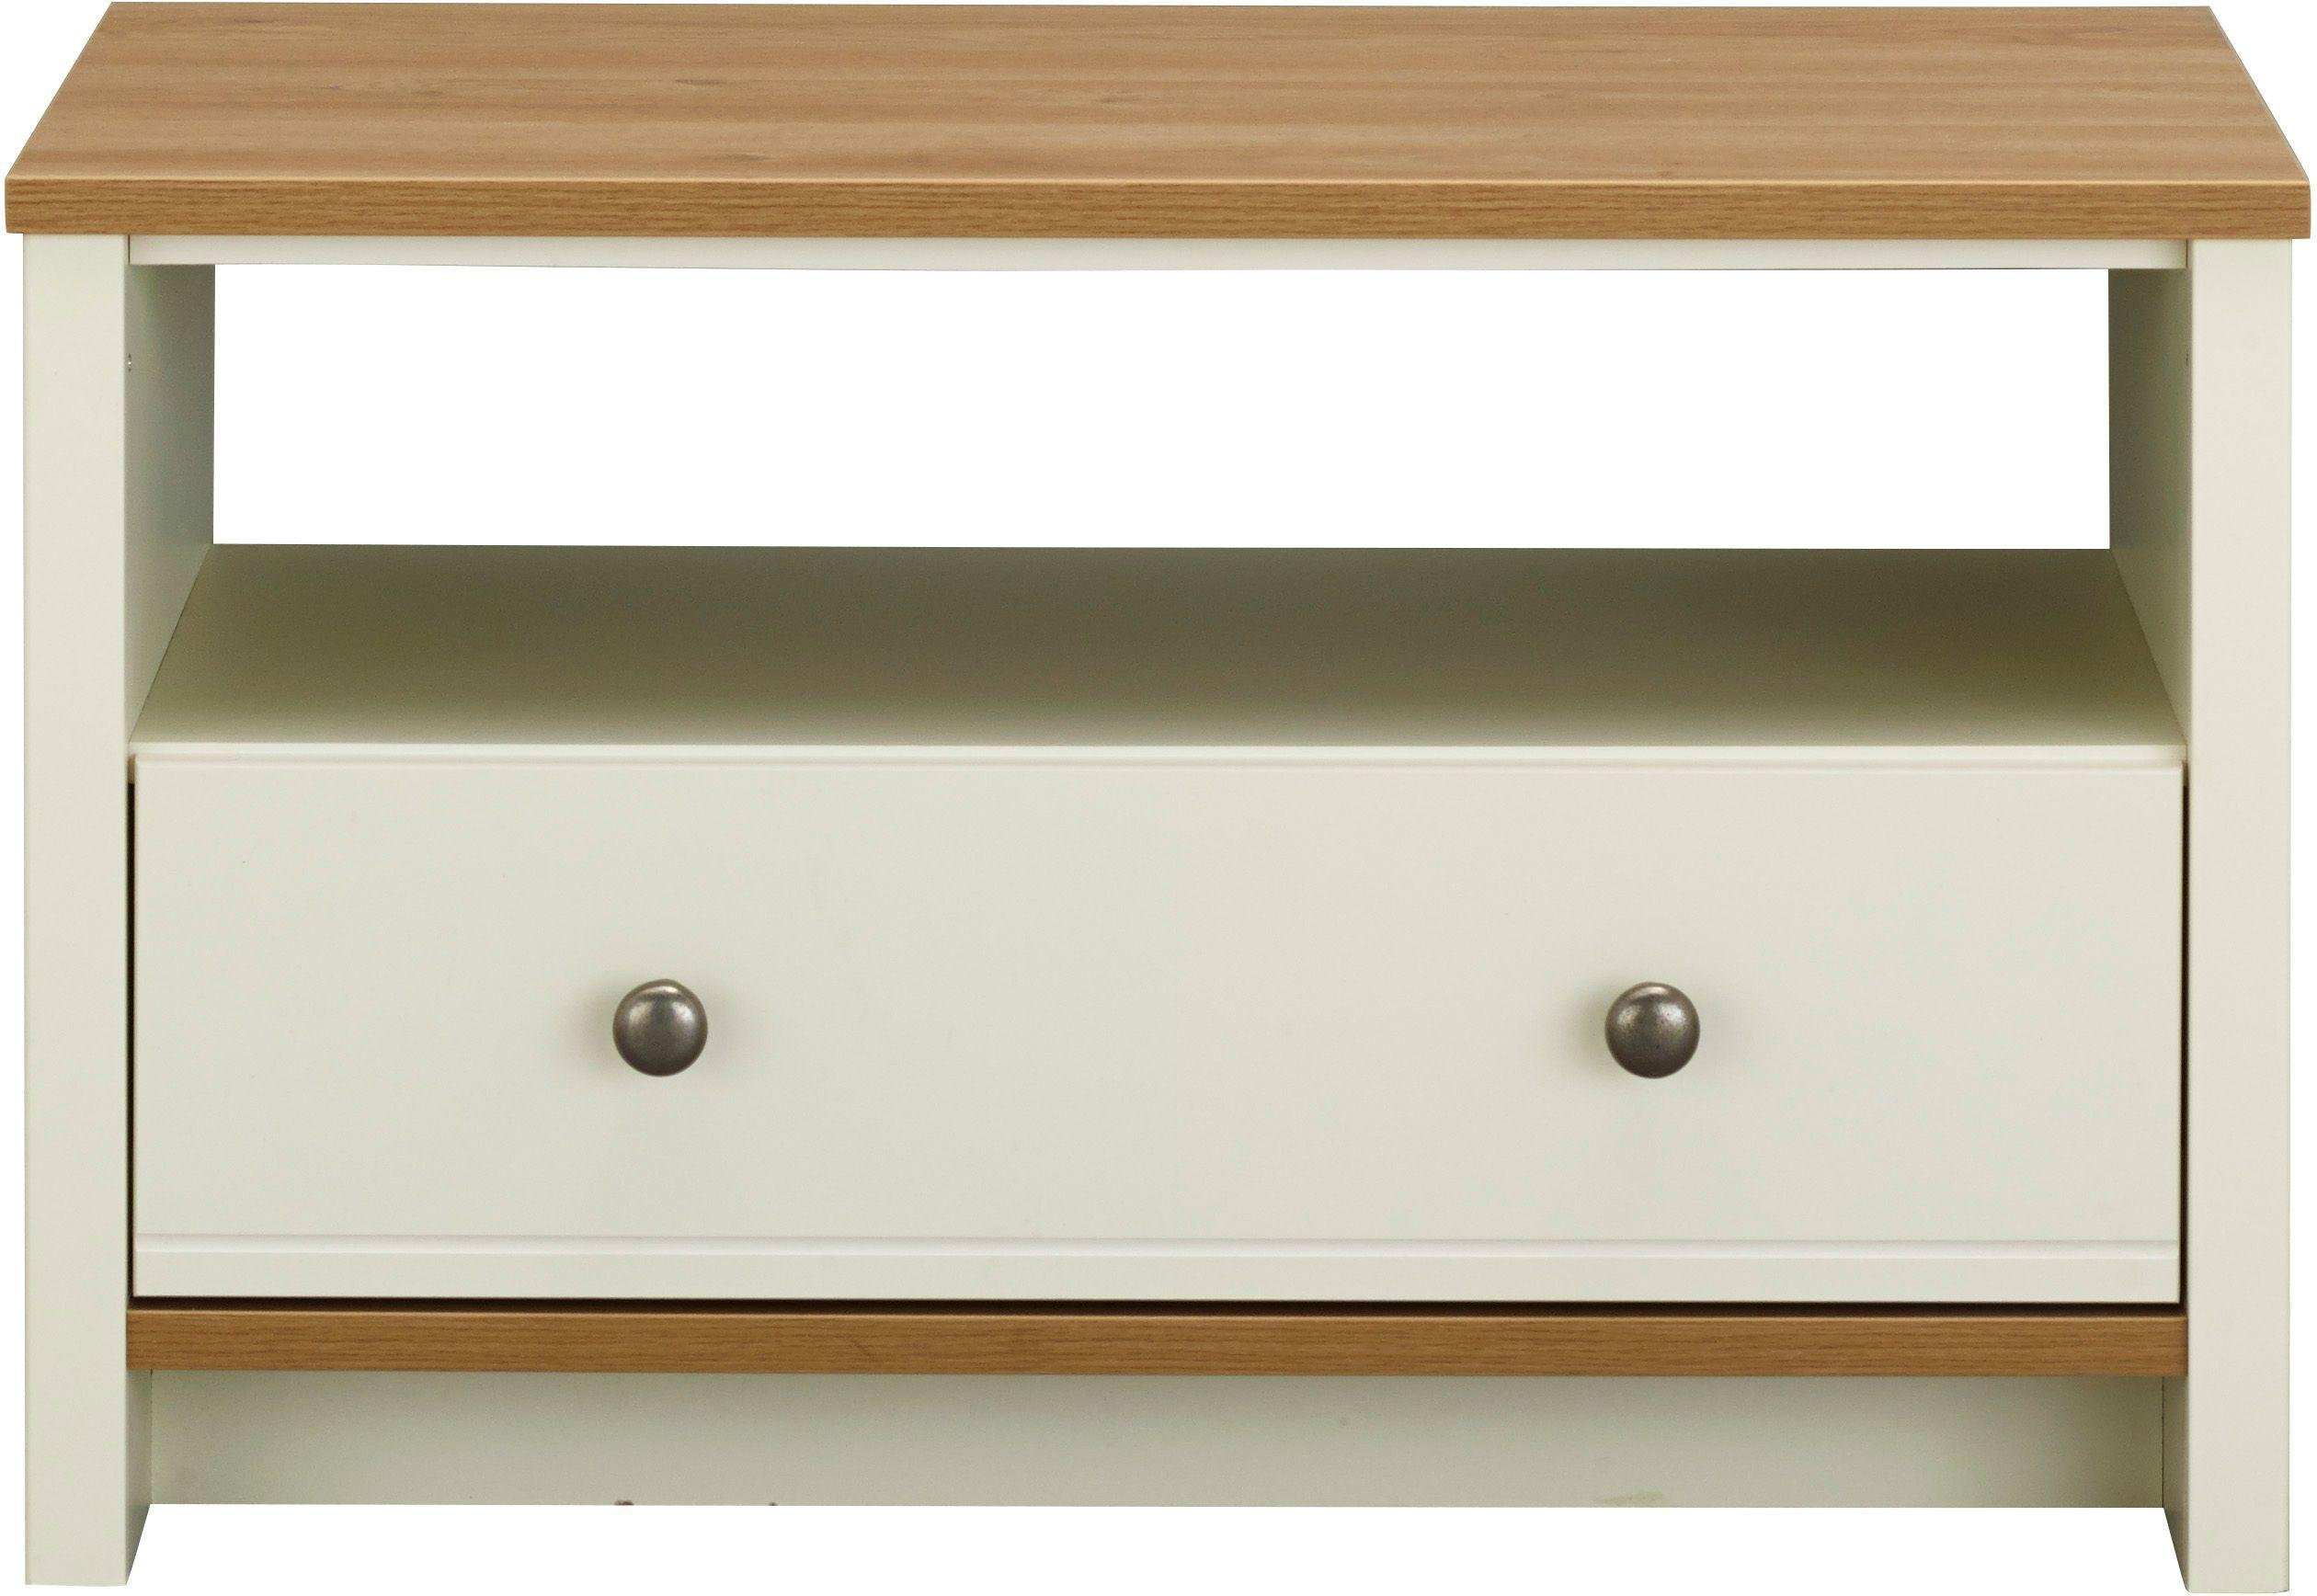 Image of Malmo 1 Drawer Coffee Table - Two Tone.